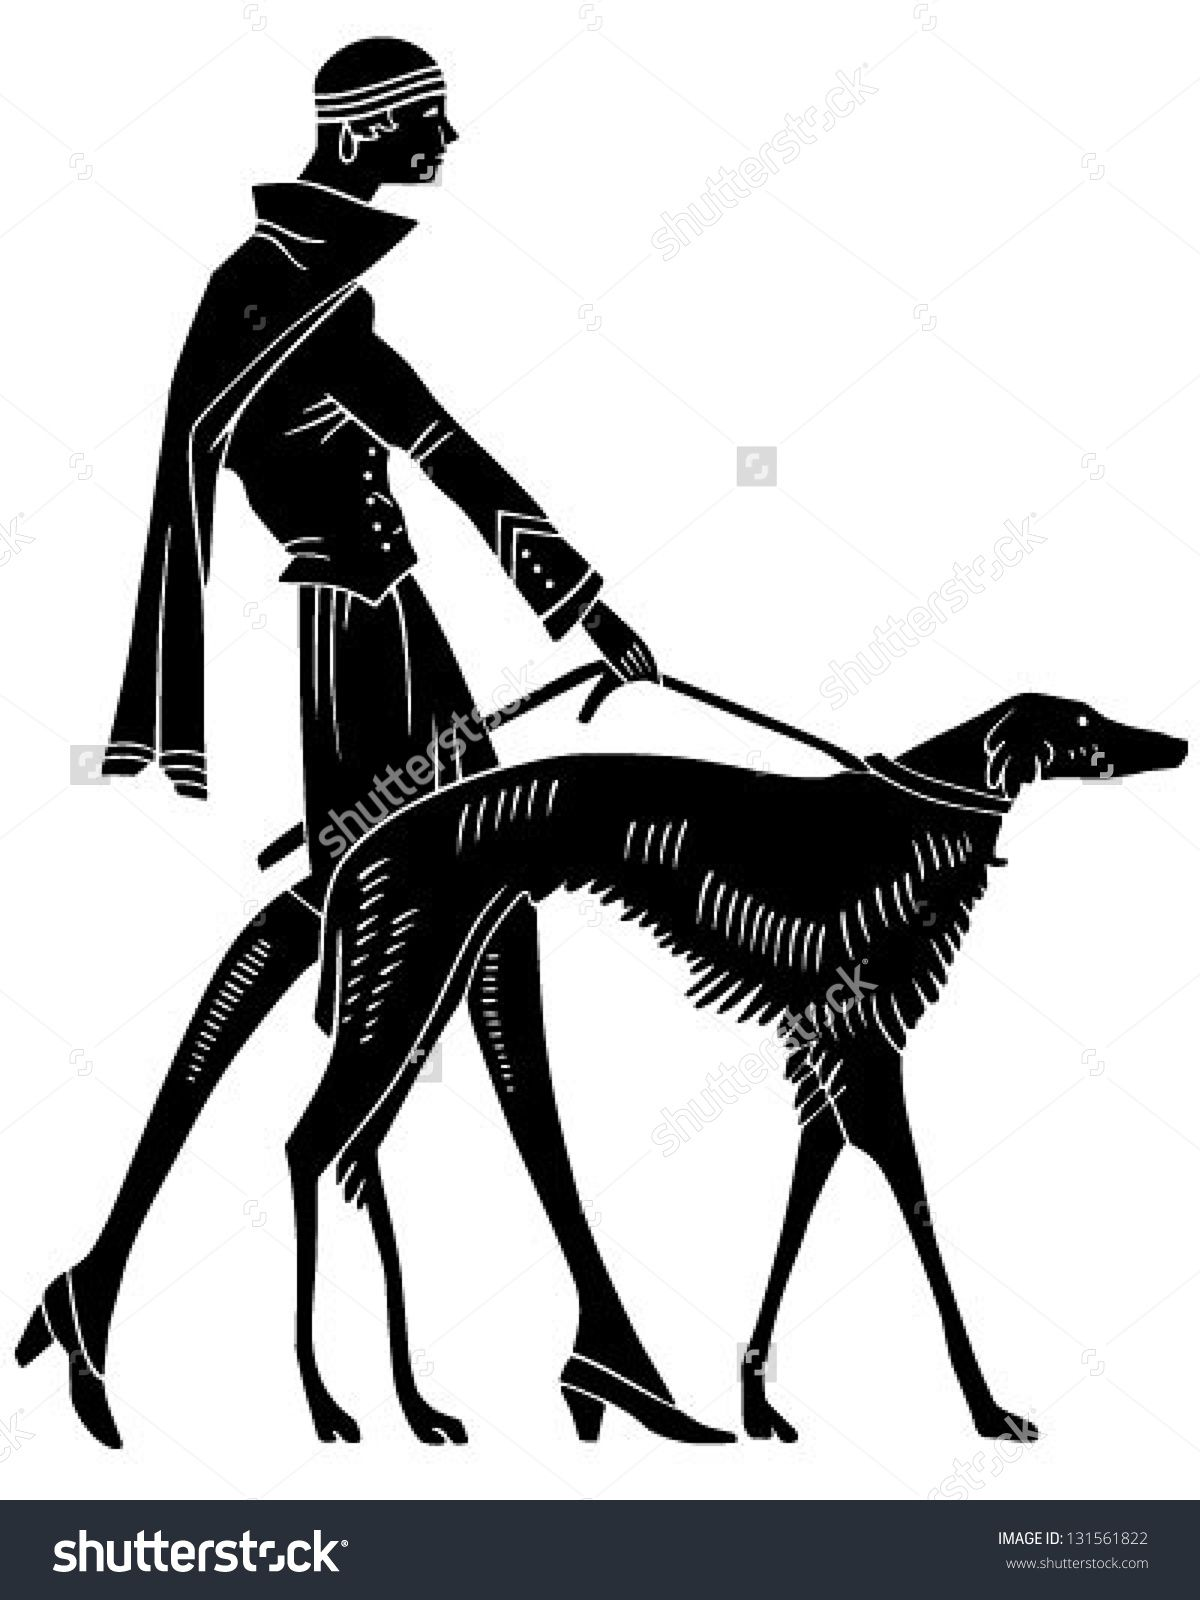 Arrows clipart art deco. Woman with dog retro